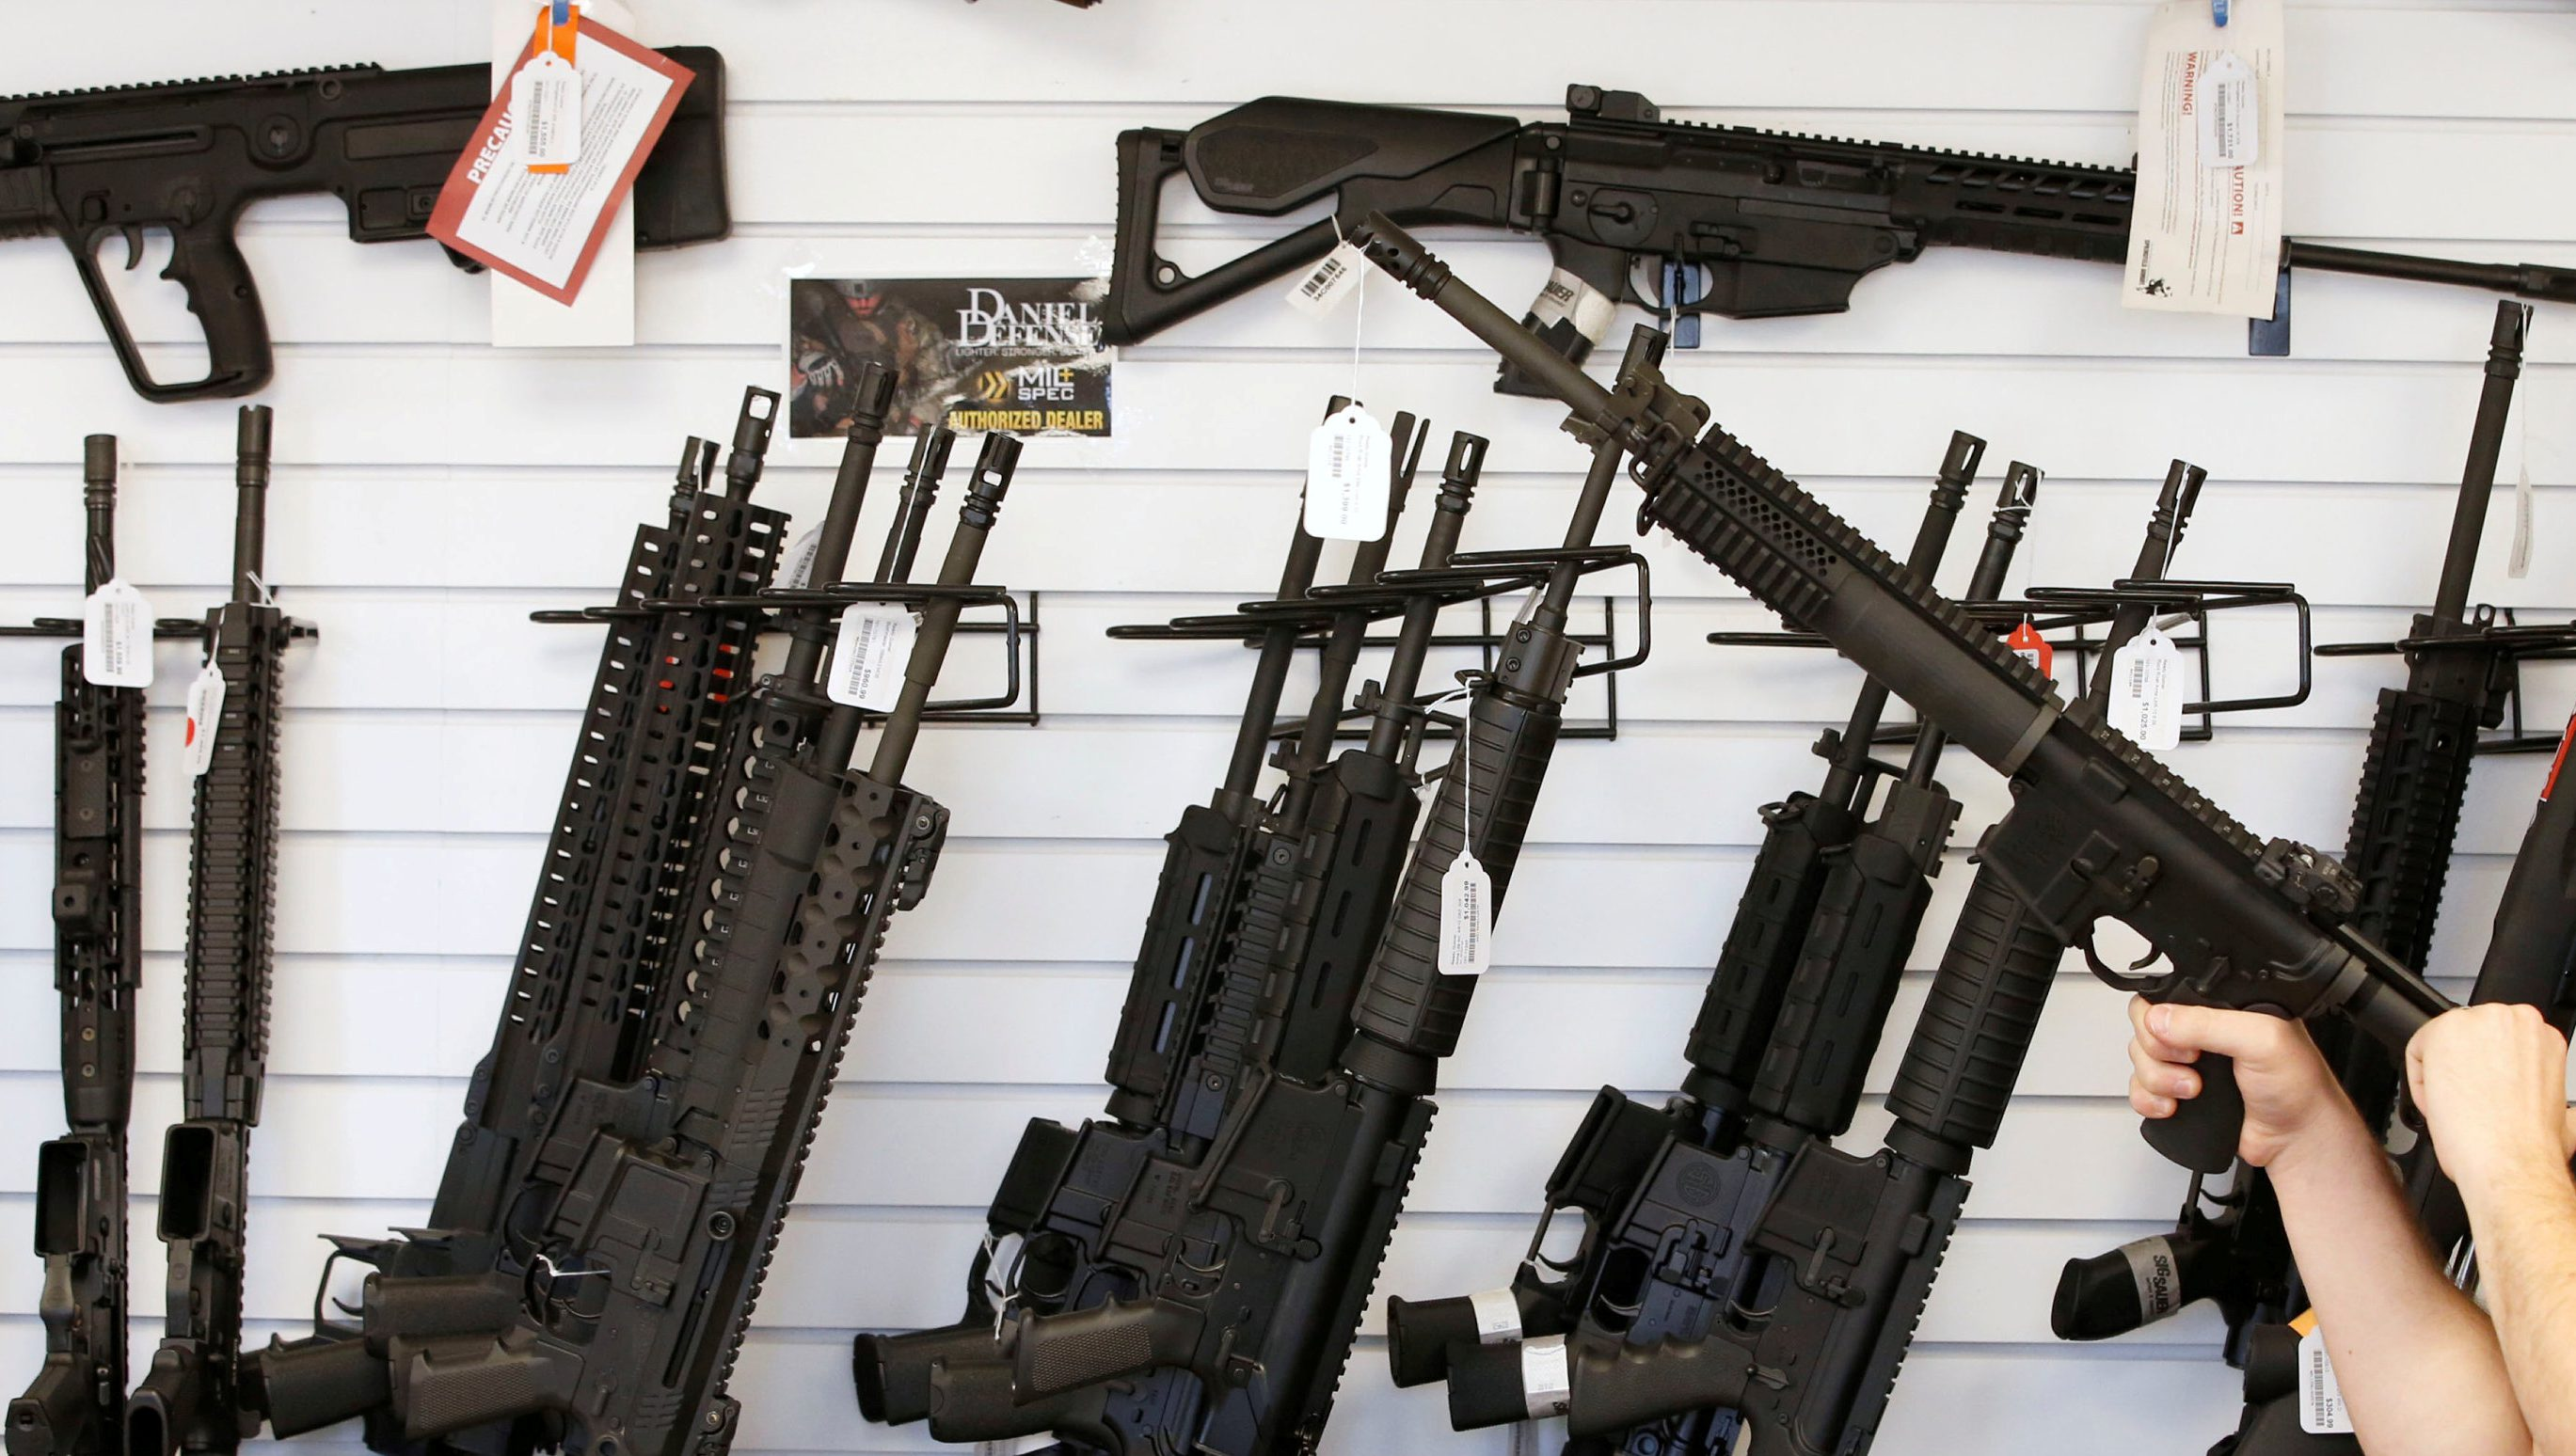 """Salesman Ryan Martinez clears the chamber of an AR-15 at the """"Ready Gunner"""" gun store In Provo, Utah, U.S. in Provo, Utah, U.S., June 21, 2016. Massachusetts will ban the sale of """"copycat"""" assault-style weapons similar to those increasingly used in mass shootings, state Attorney General Maura Healey, said July 20, 2016. REUTERS/George Frey/File Photo - TM3EC7K1DK101"""